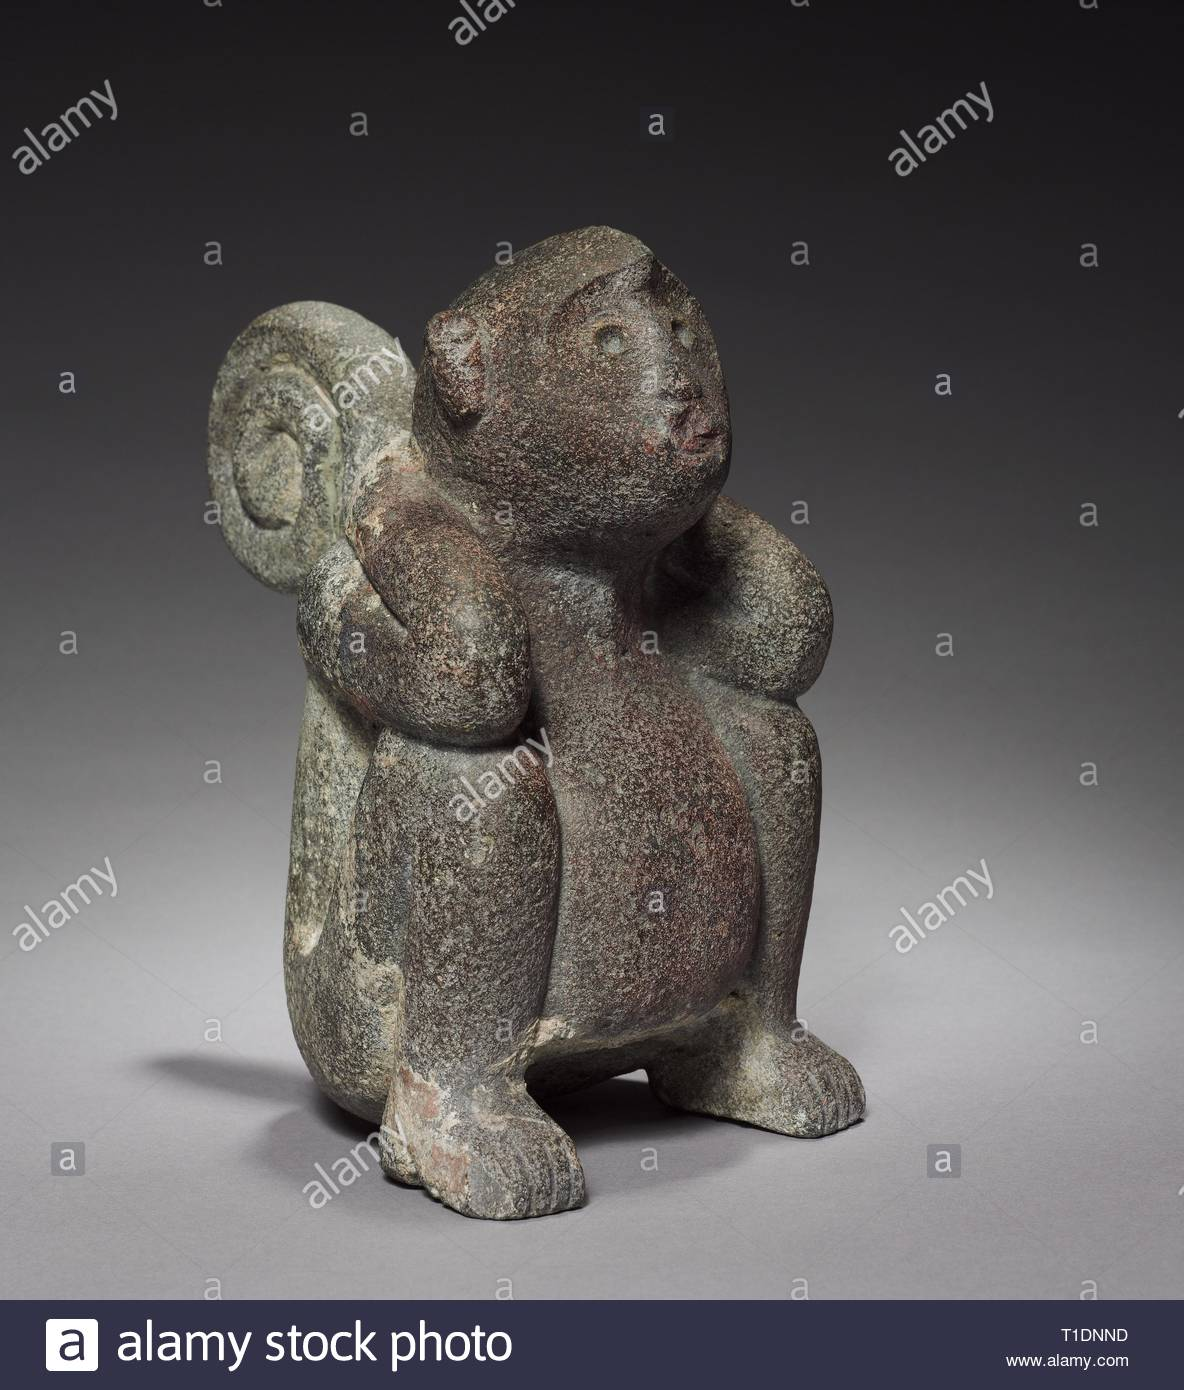 Monkey, 1325-1519. Central Mexico, Tacuba, Aztec, Post-Classic Period. Stone; overall: 24.5 x 14.5 x 20.5 cm (9 5/8 x 5 11/16 x 8 1/16 in.). - Stock Image